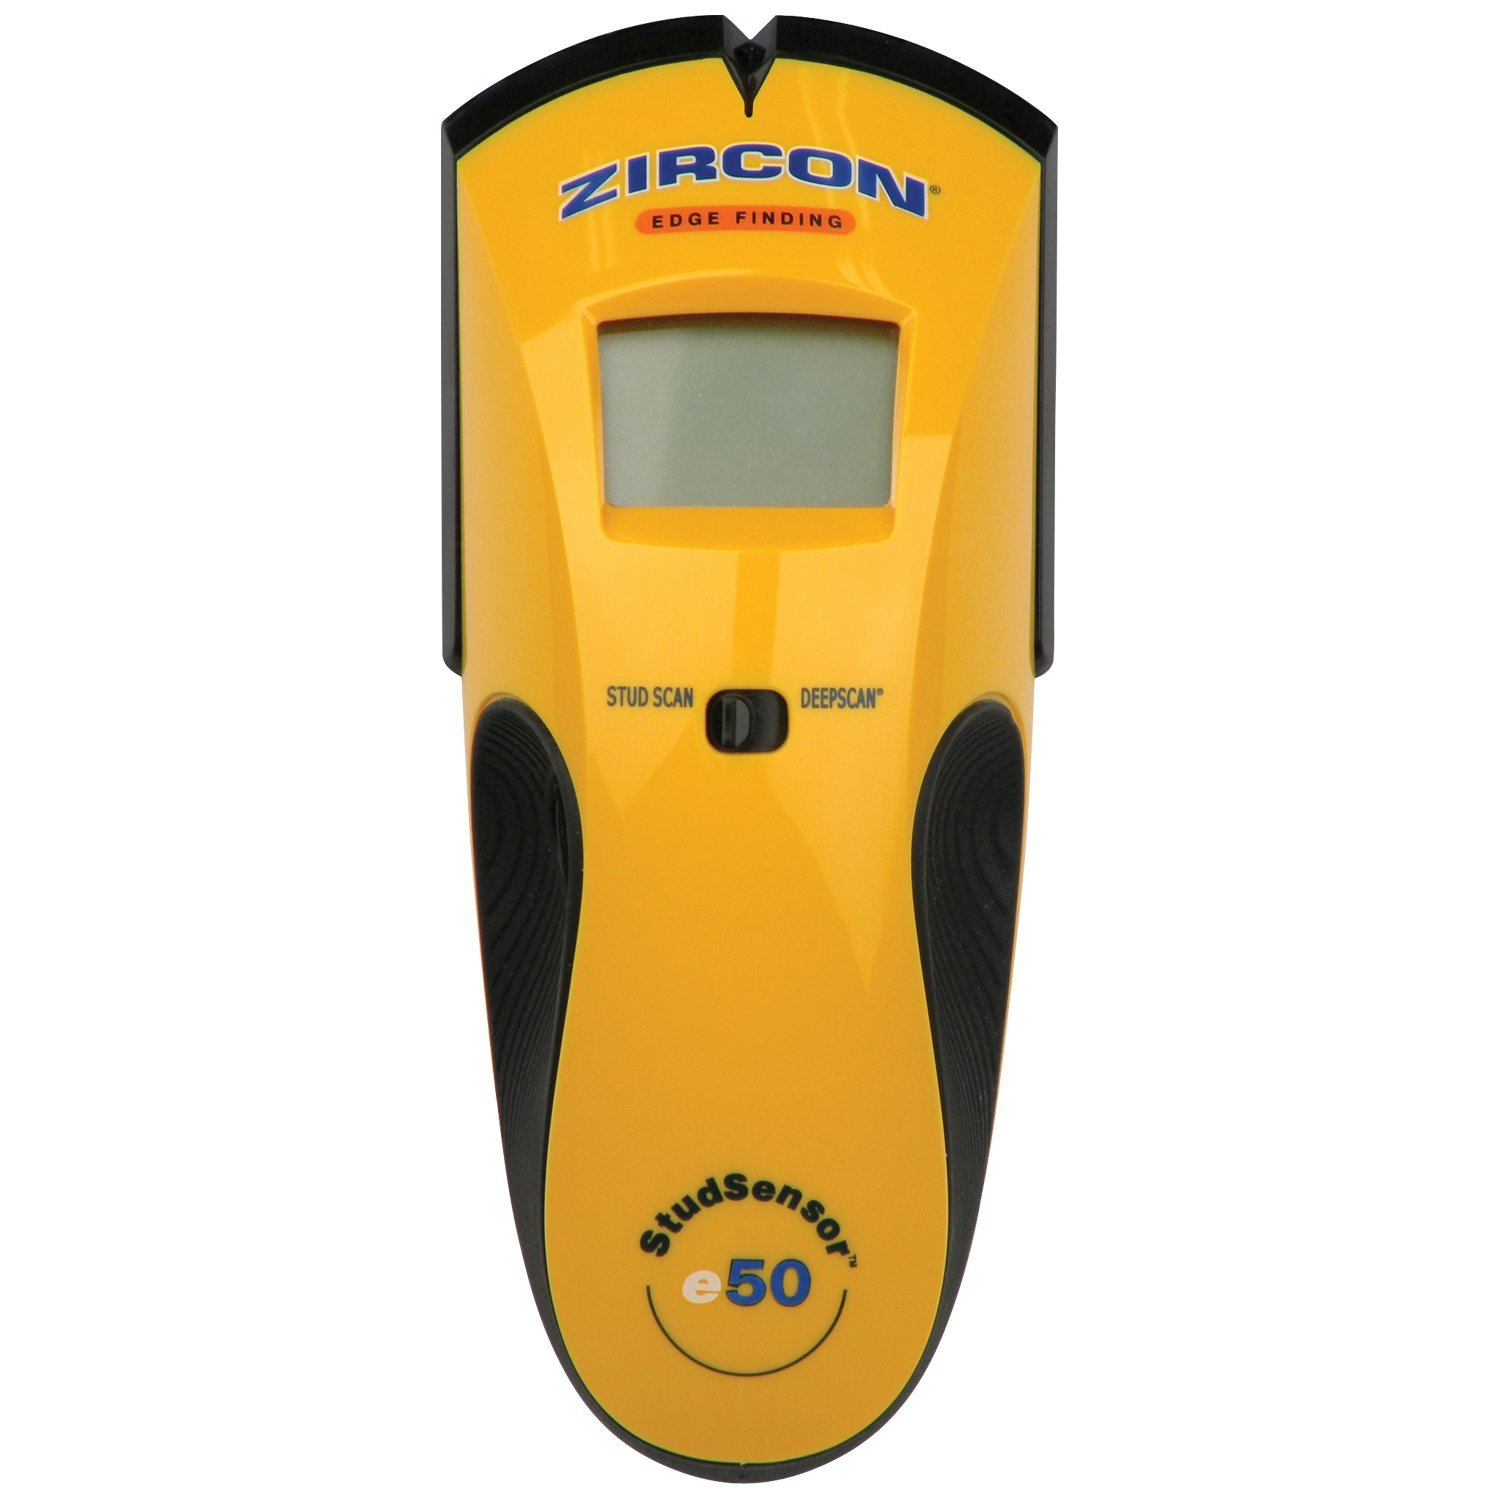 Zircon e50-FFP Stud Sensor e50 Edge-Finding Electronic Stud Finder with AC Wire Warning